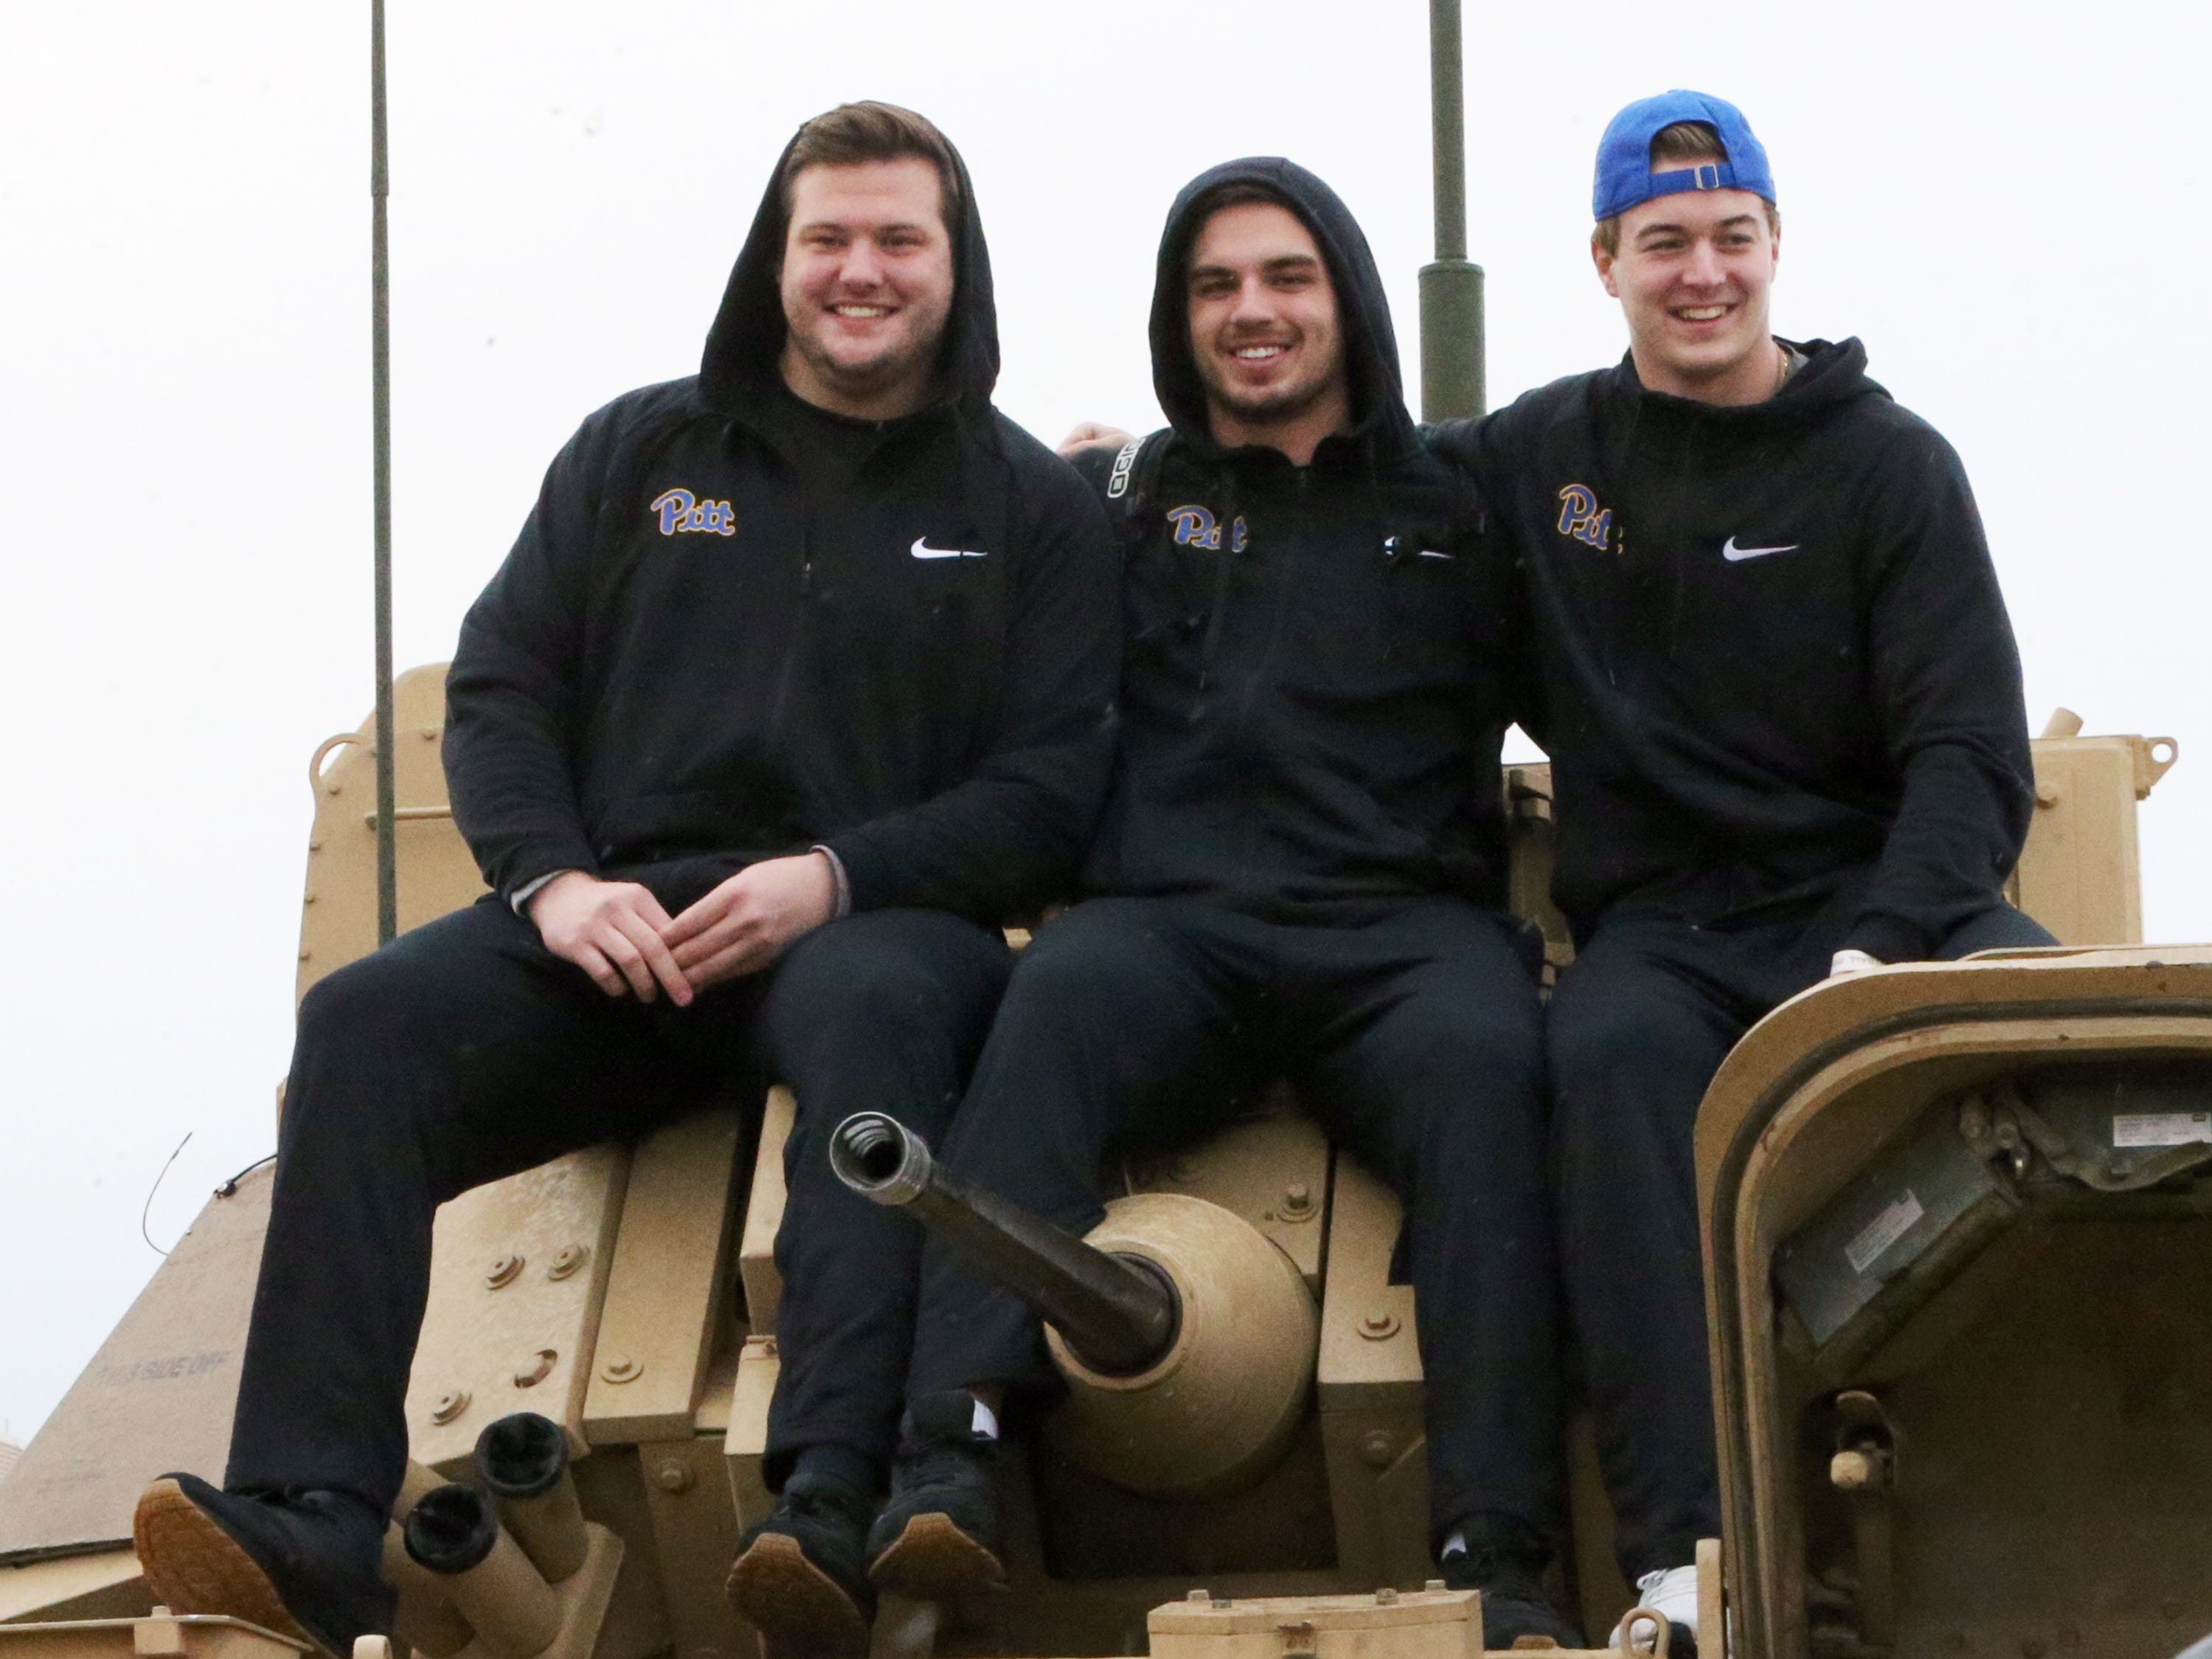 The University of Pittsburgh football team got up close to a Bradley Fighting Vehicle Friday at Fort Bliss.